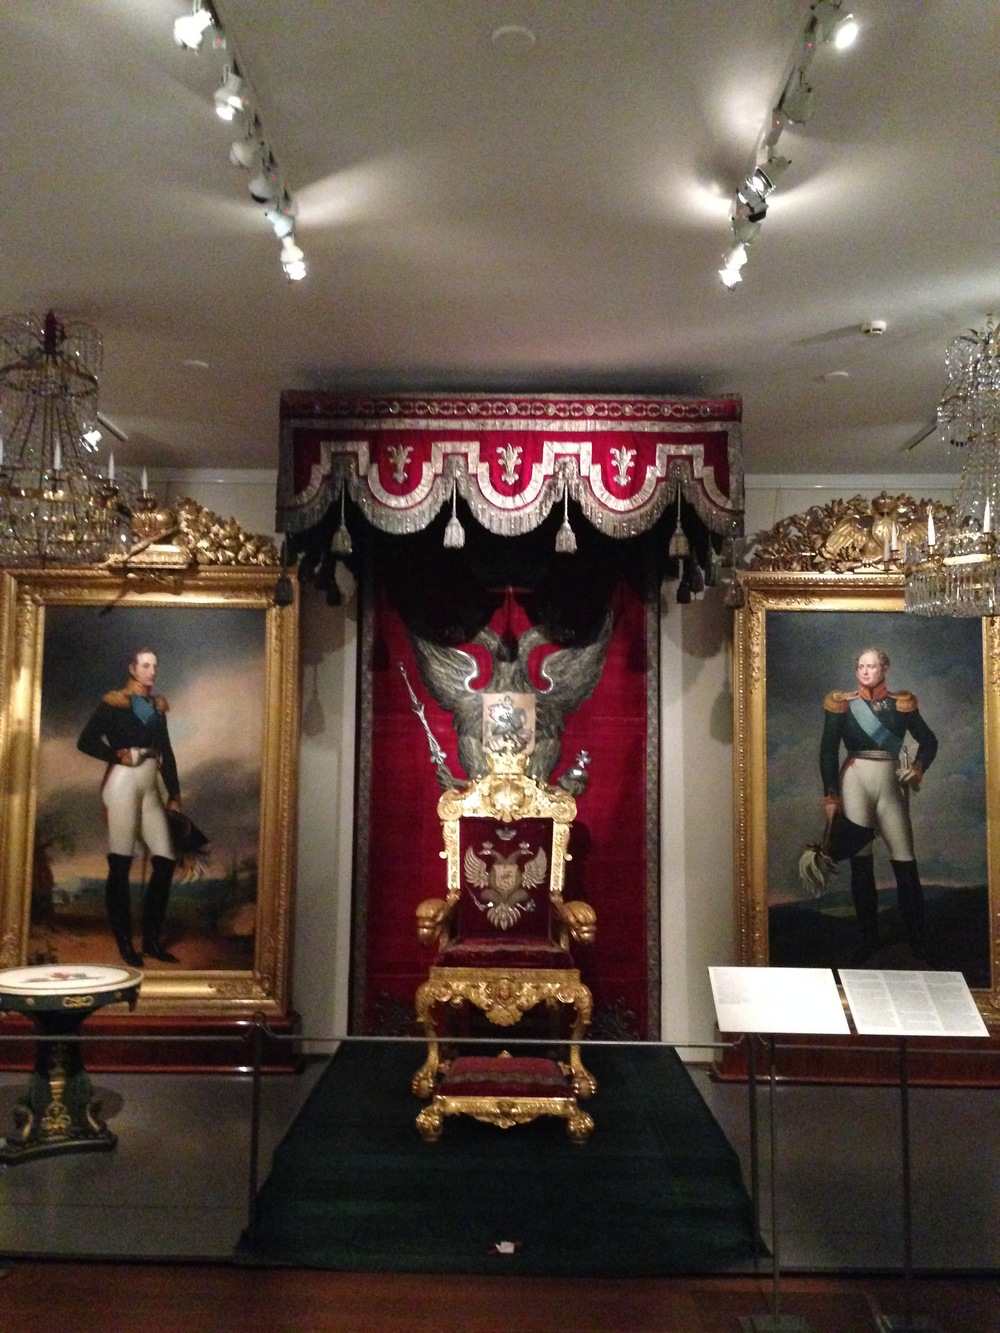 The imperial throne of Tsar Alexander I, who was the first Russian Grand Duke of Finland, on display at the museum. It dates back to the 1810s.